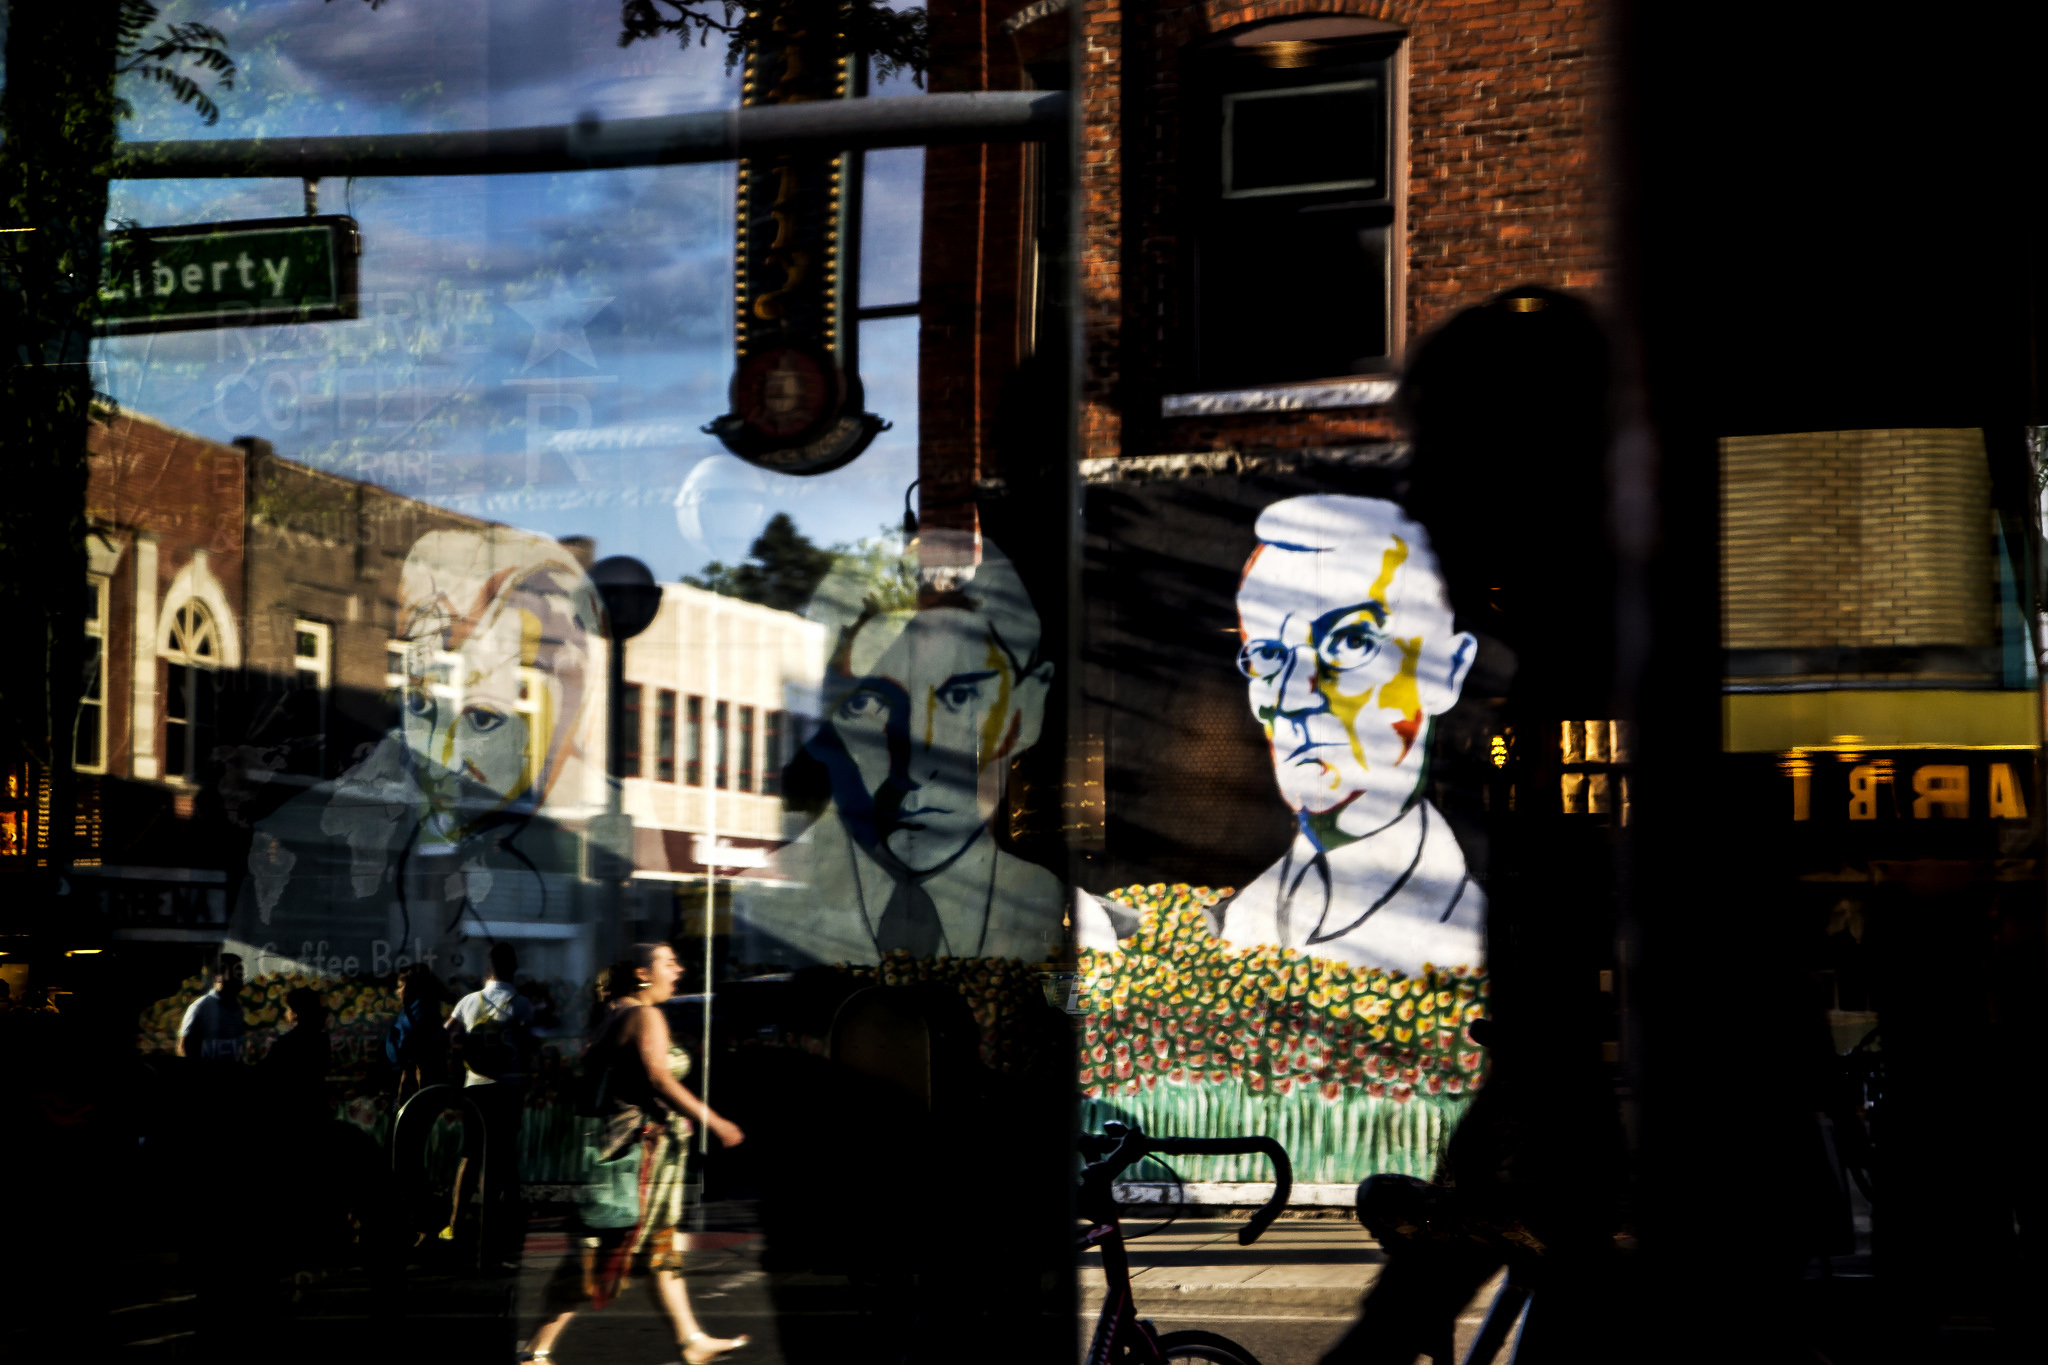 A photograph of reflections of State St. at the Corner of State St. and E. Liberty